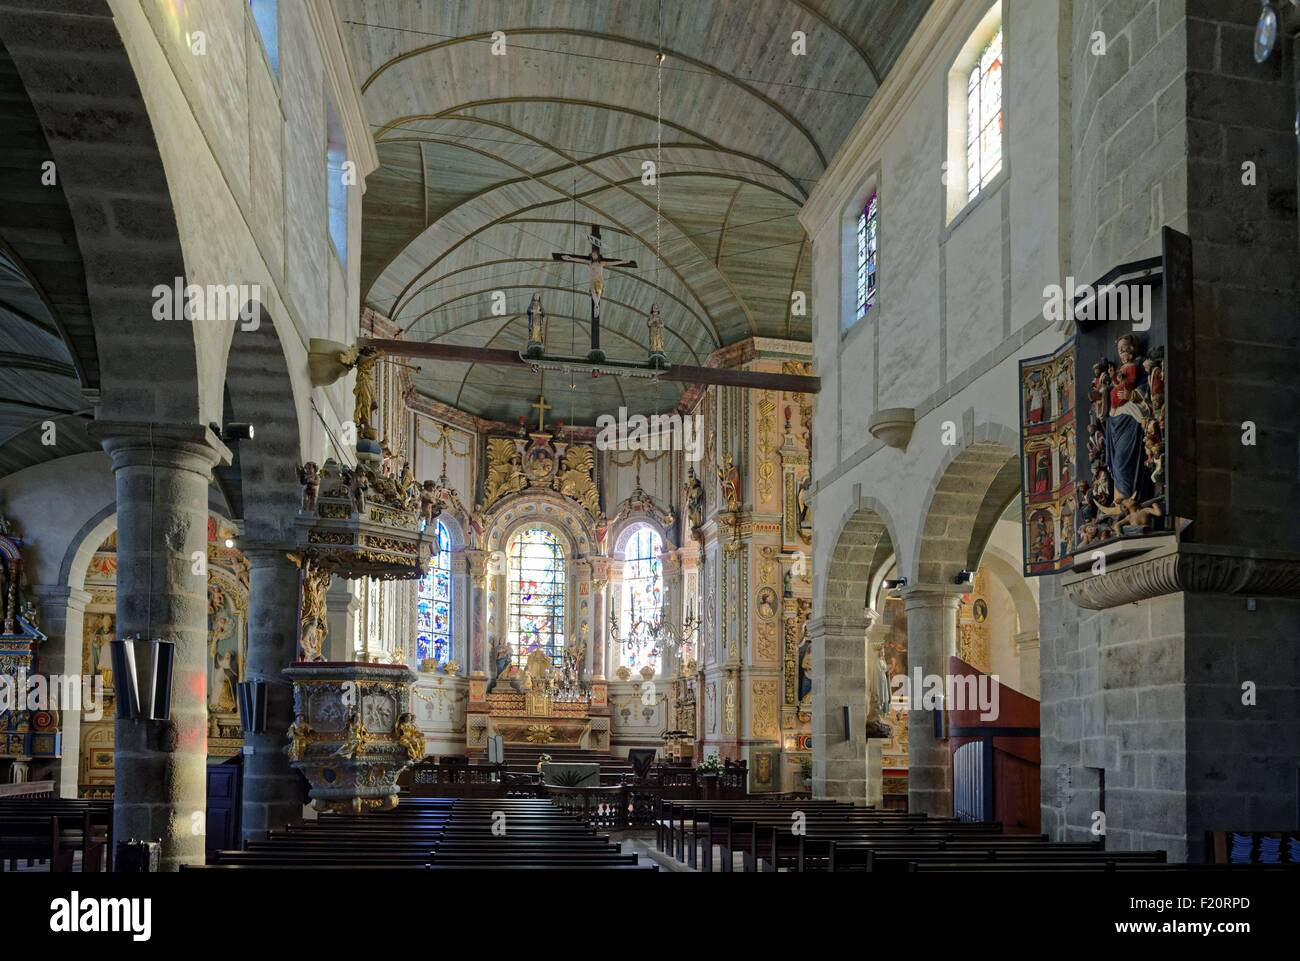 France, Finistere, stop on the Way of St James, St Thegonnec, parish enclosure, the church, the pulpit - Stock Image